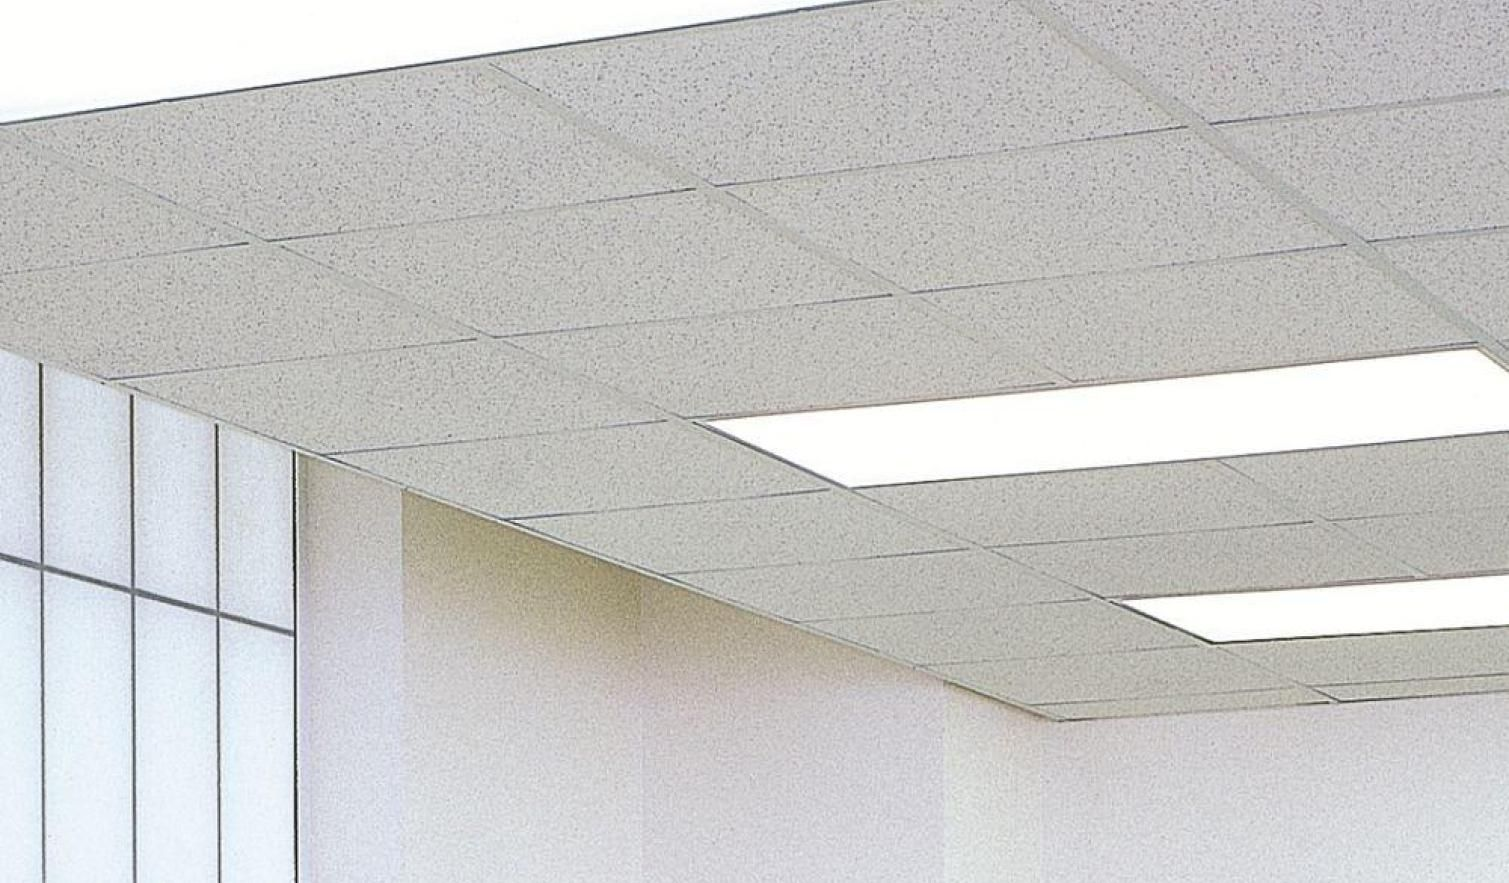 Pretty 12 By 12 Ceiling Tiles Tall 12X12 Acoustic Ceiling Tiles Shaped 12X12 Ceiling Tiles Lowes 2 X 12 Ceramic Tile Old 2X4 Ceramic Tile Blue8X8 White Floor Tile Armstrong Ceiling Tile Reveal Edge | Http ..